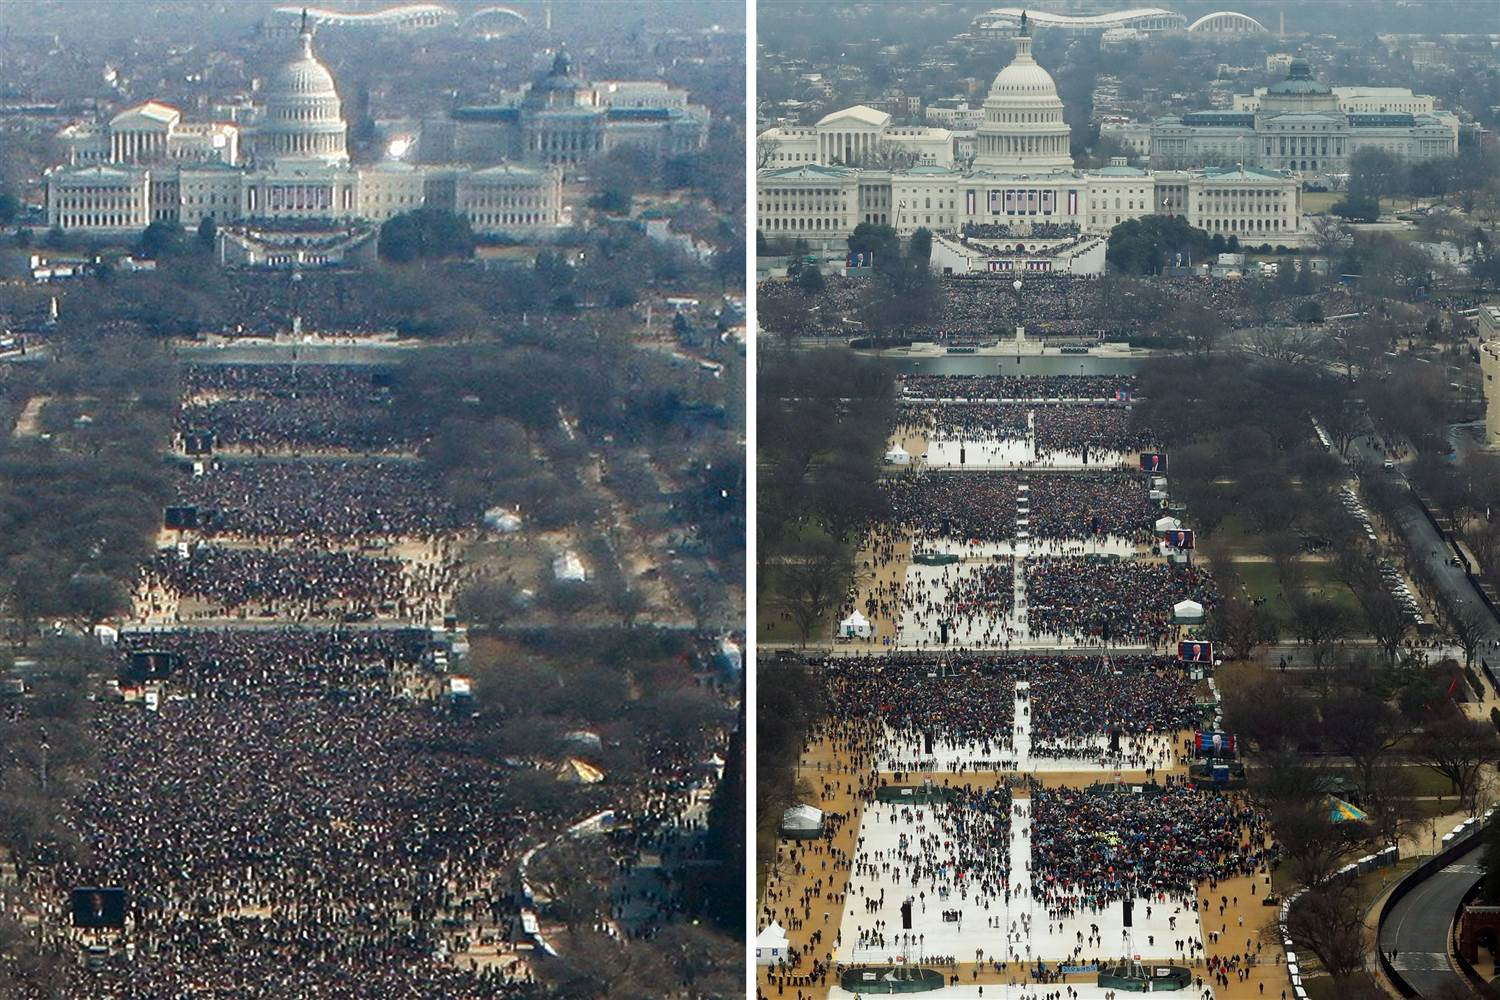 obama trump inauguration photos side by side image